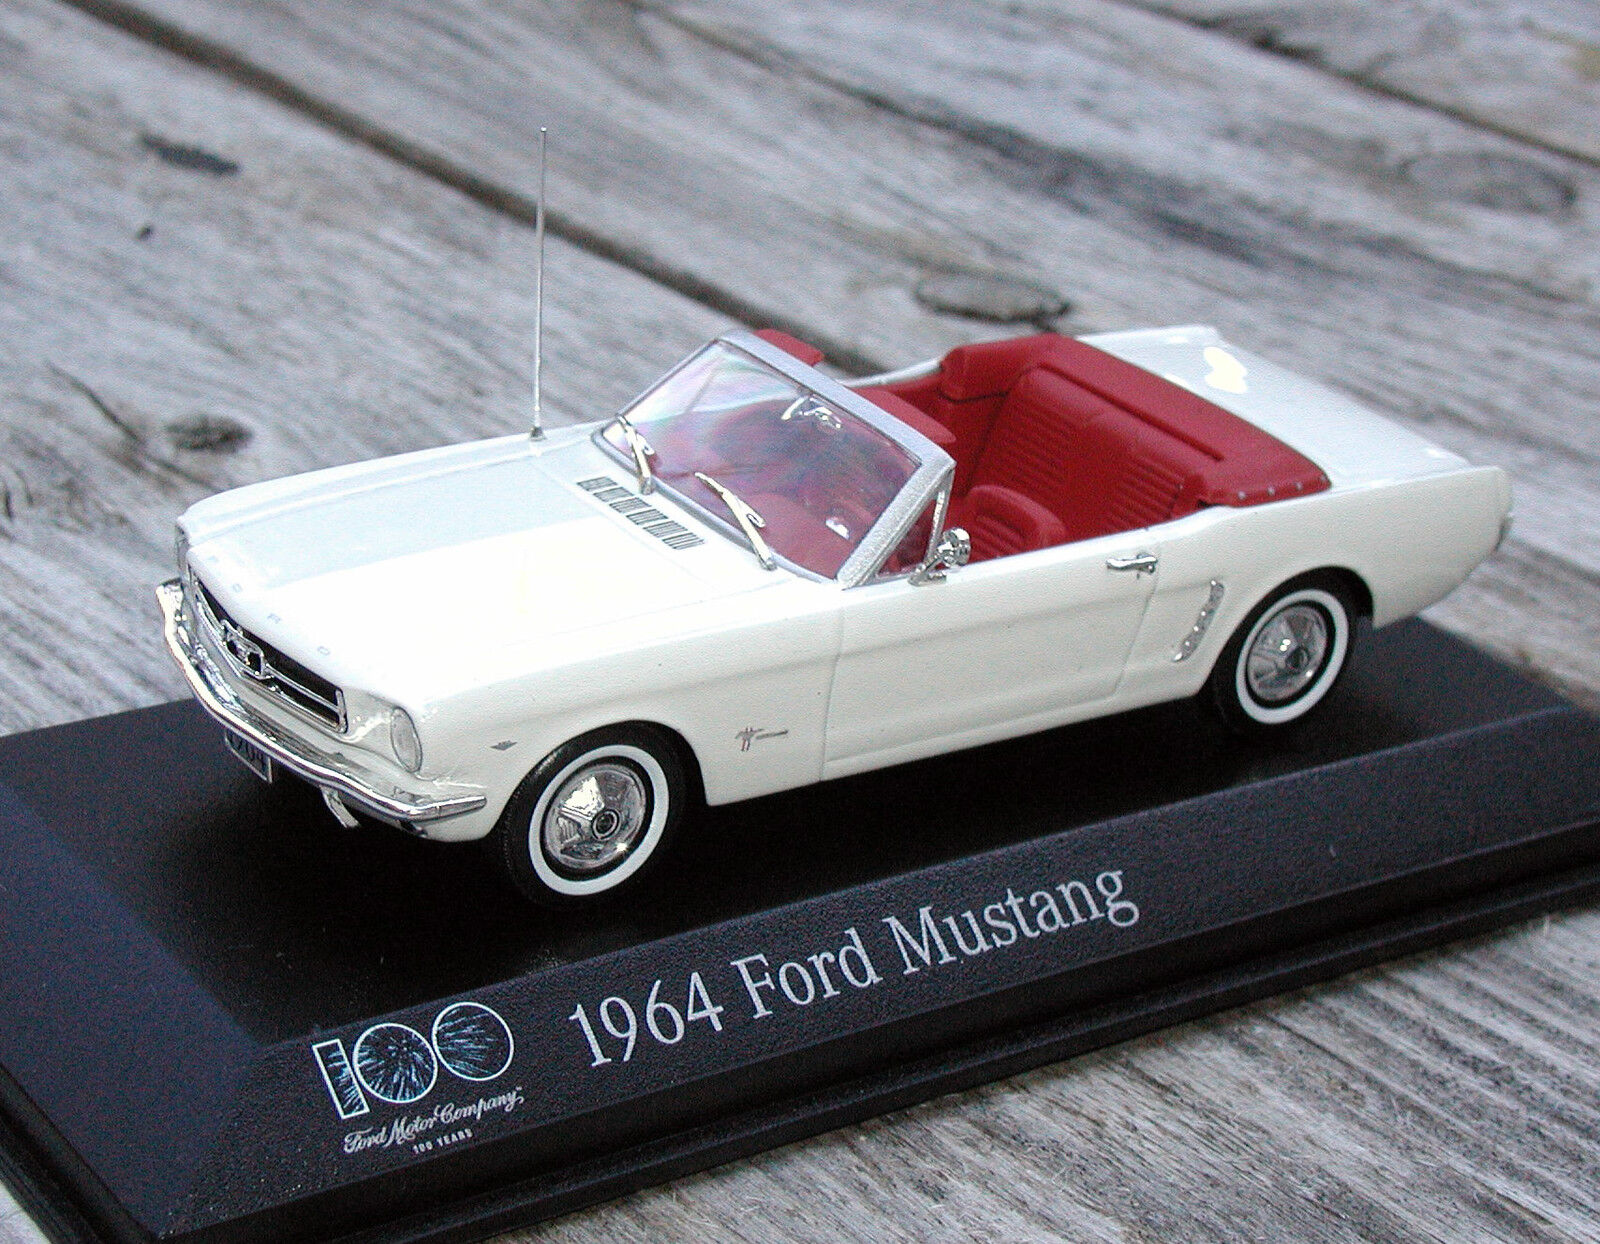 1 43 1964 FORD MUSTANG MINICHAMPS - LIMITED LIMITED LIMITED EDITION 100 YEARS FORD f1f24b